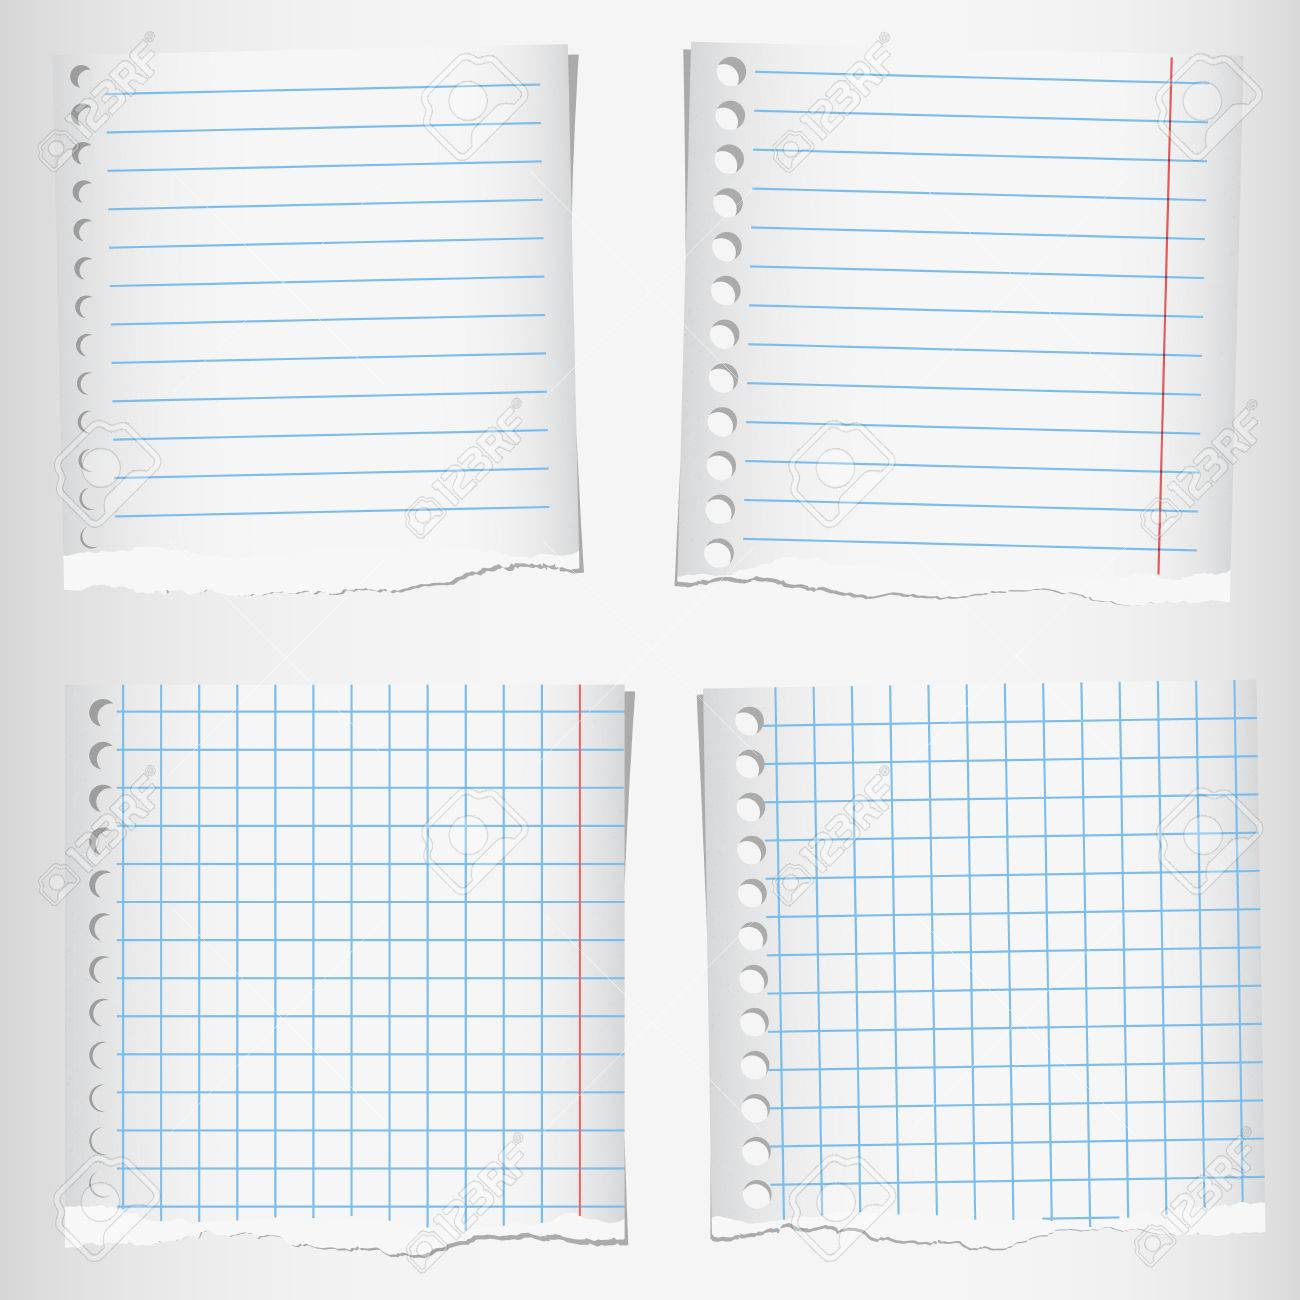 set of torn notebook papers with lines and grid. royalty free